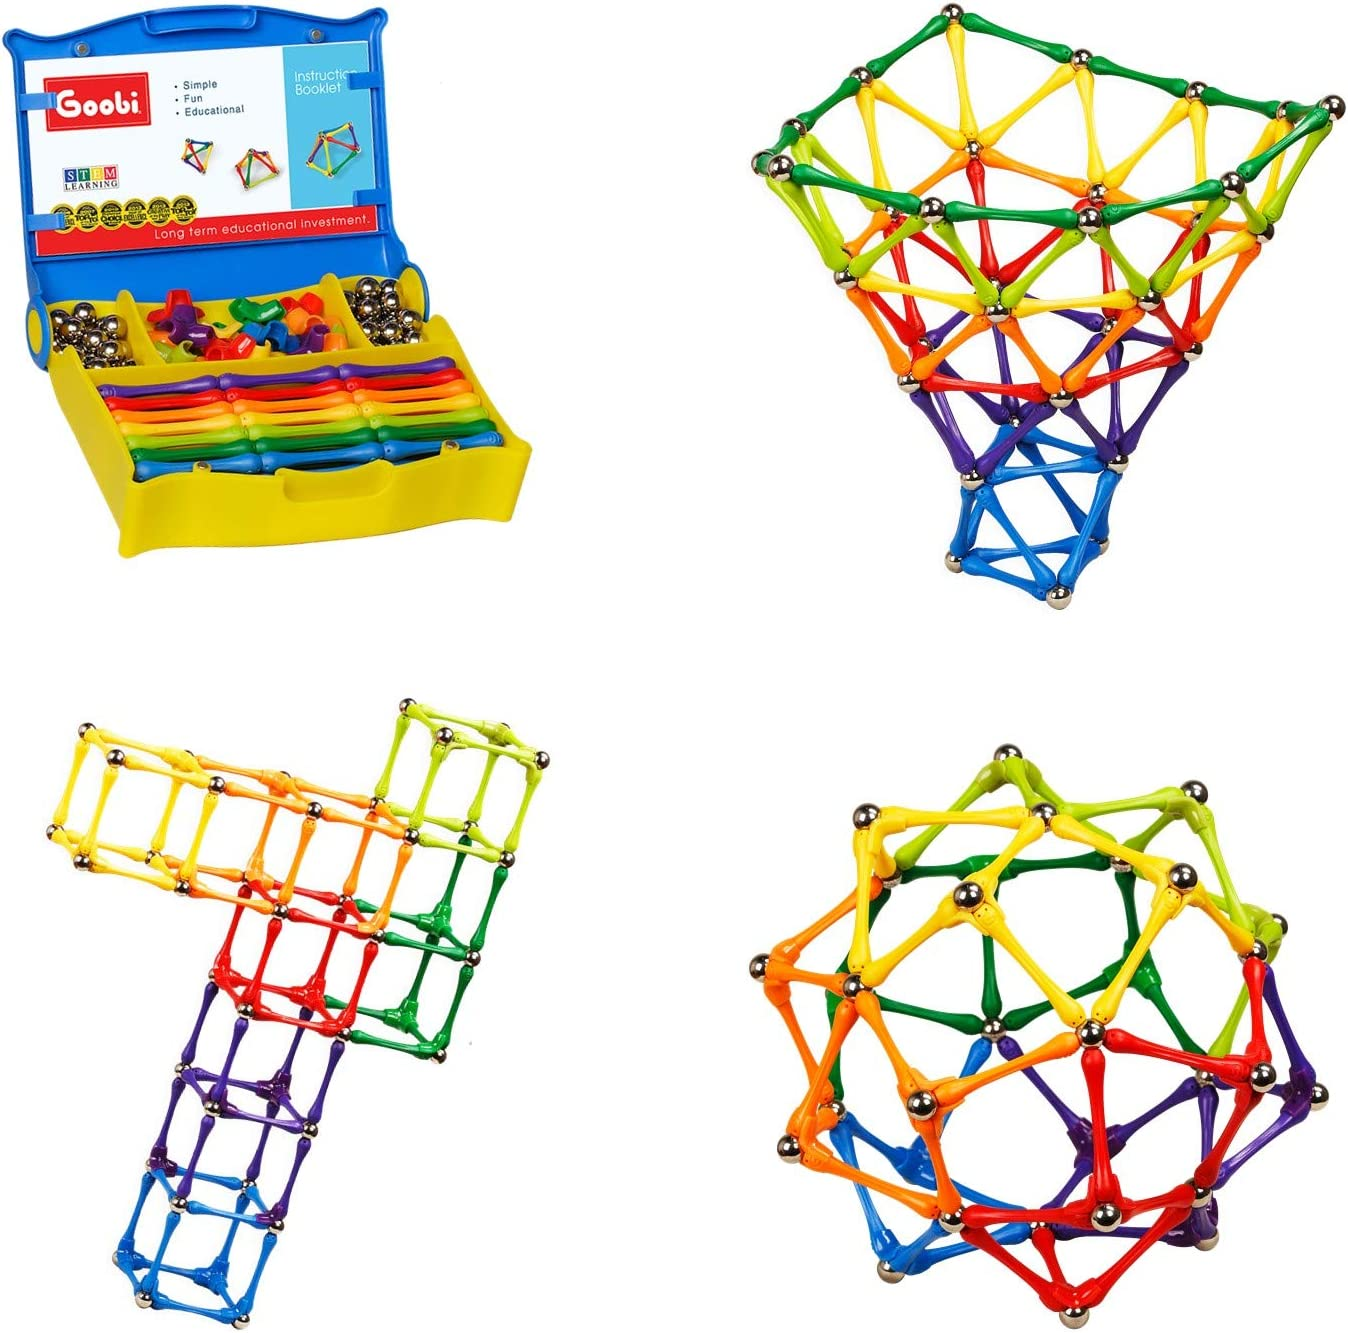 Goobi 180 Piece Construction Set Building Toy Active Play Sticks STEM Learning Creativity Imagination Children's 3D Puzzle Educational Brain Toys for Kids Boys and Girls with Instruction Booklet